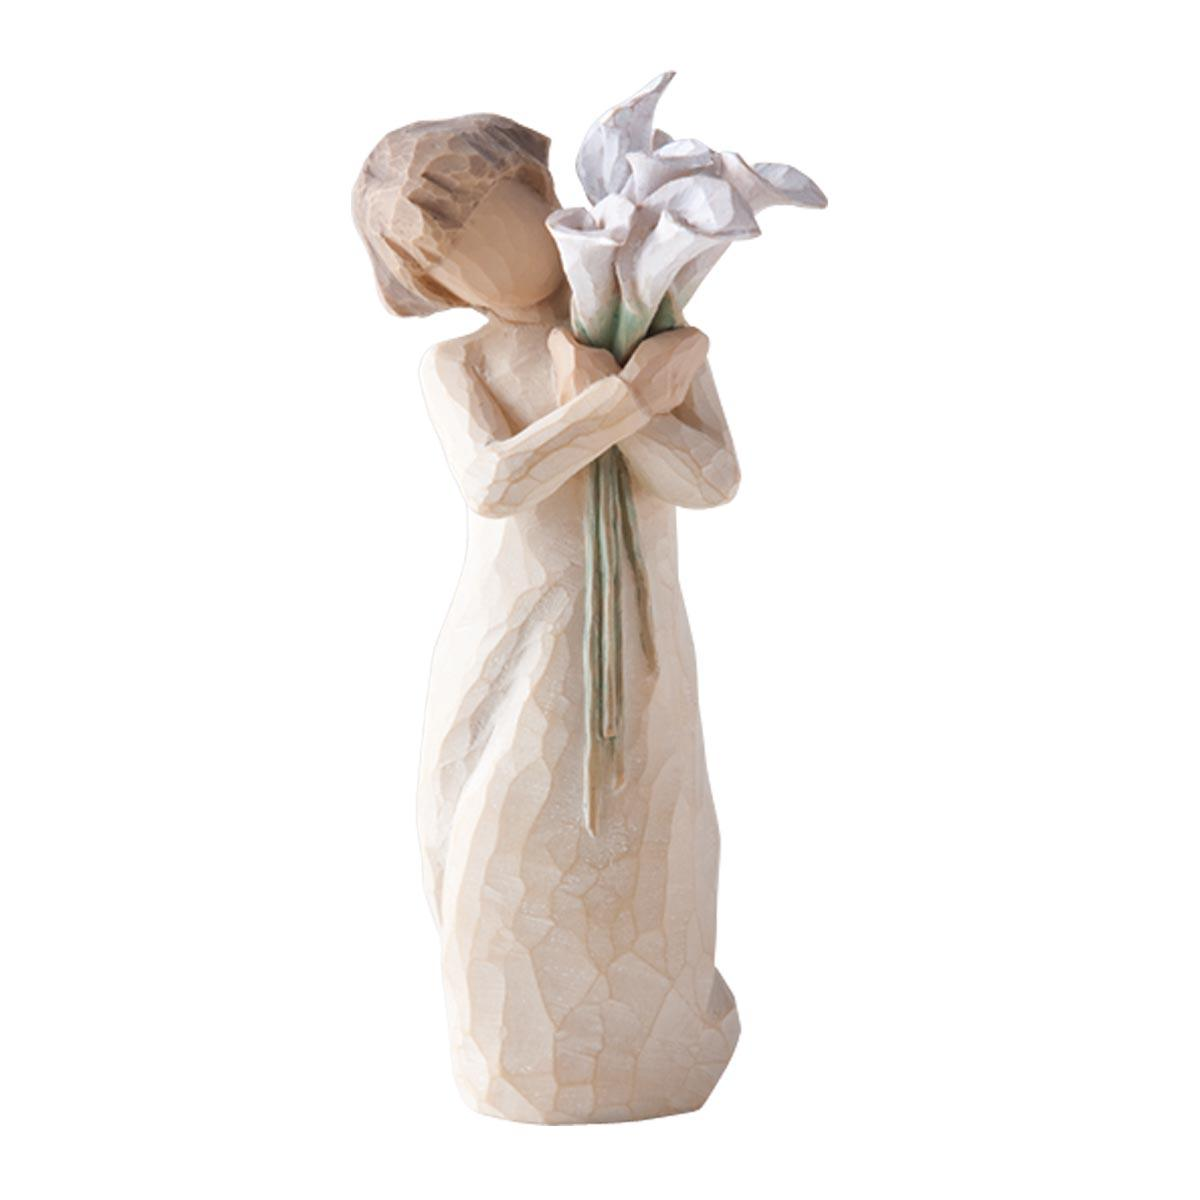 Willow Tree Bellissimi auguri 26246 Design di Susan Lordi 13 cm